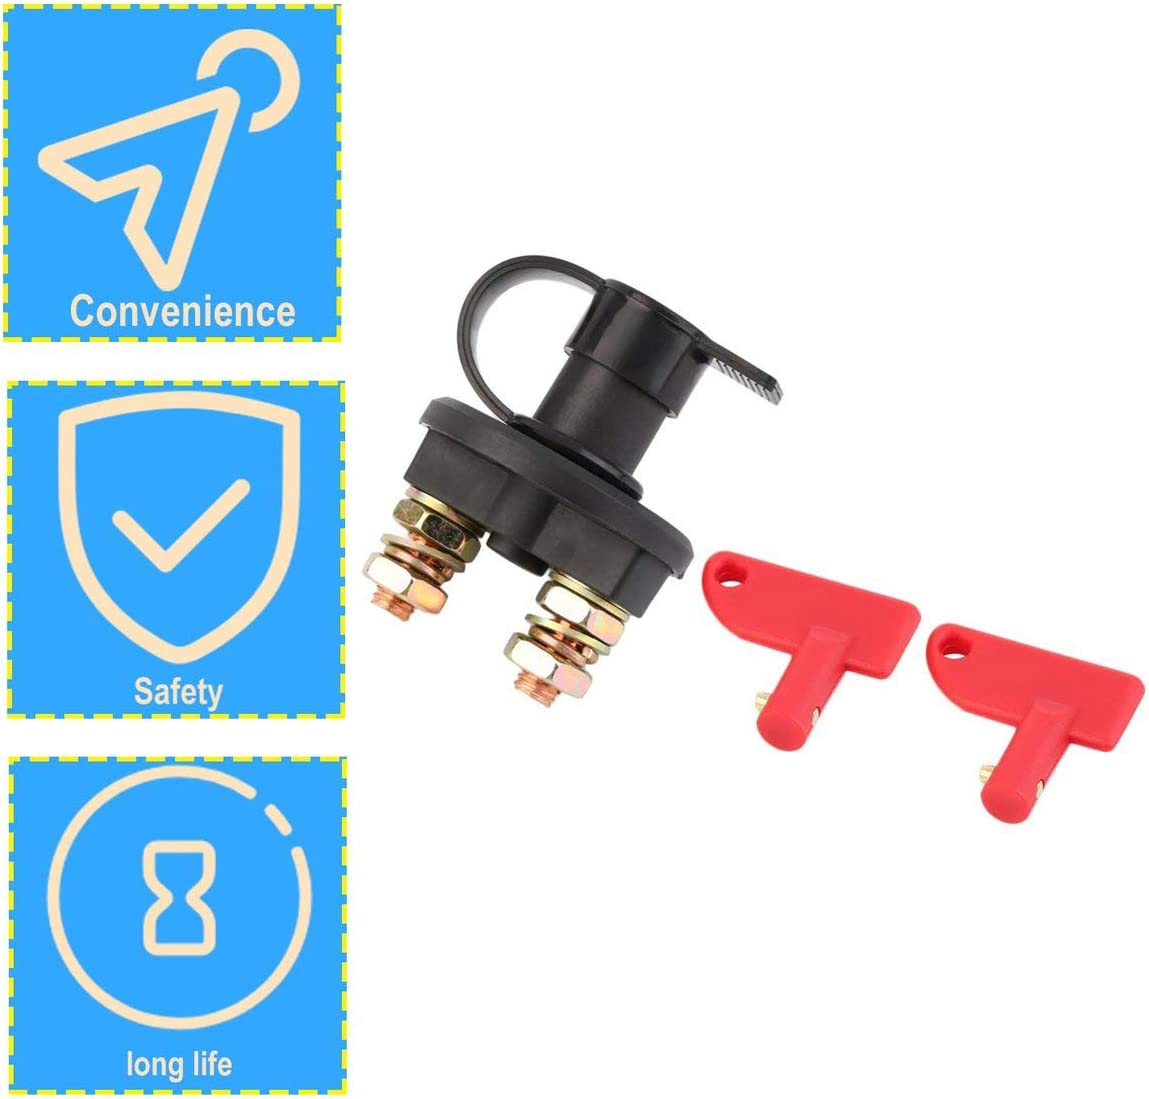 12V//24V Universal Automobile Car Truck Boat Battery Isolator Disconnect Cut Off Power Kill Switch Waterproof Switch